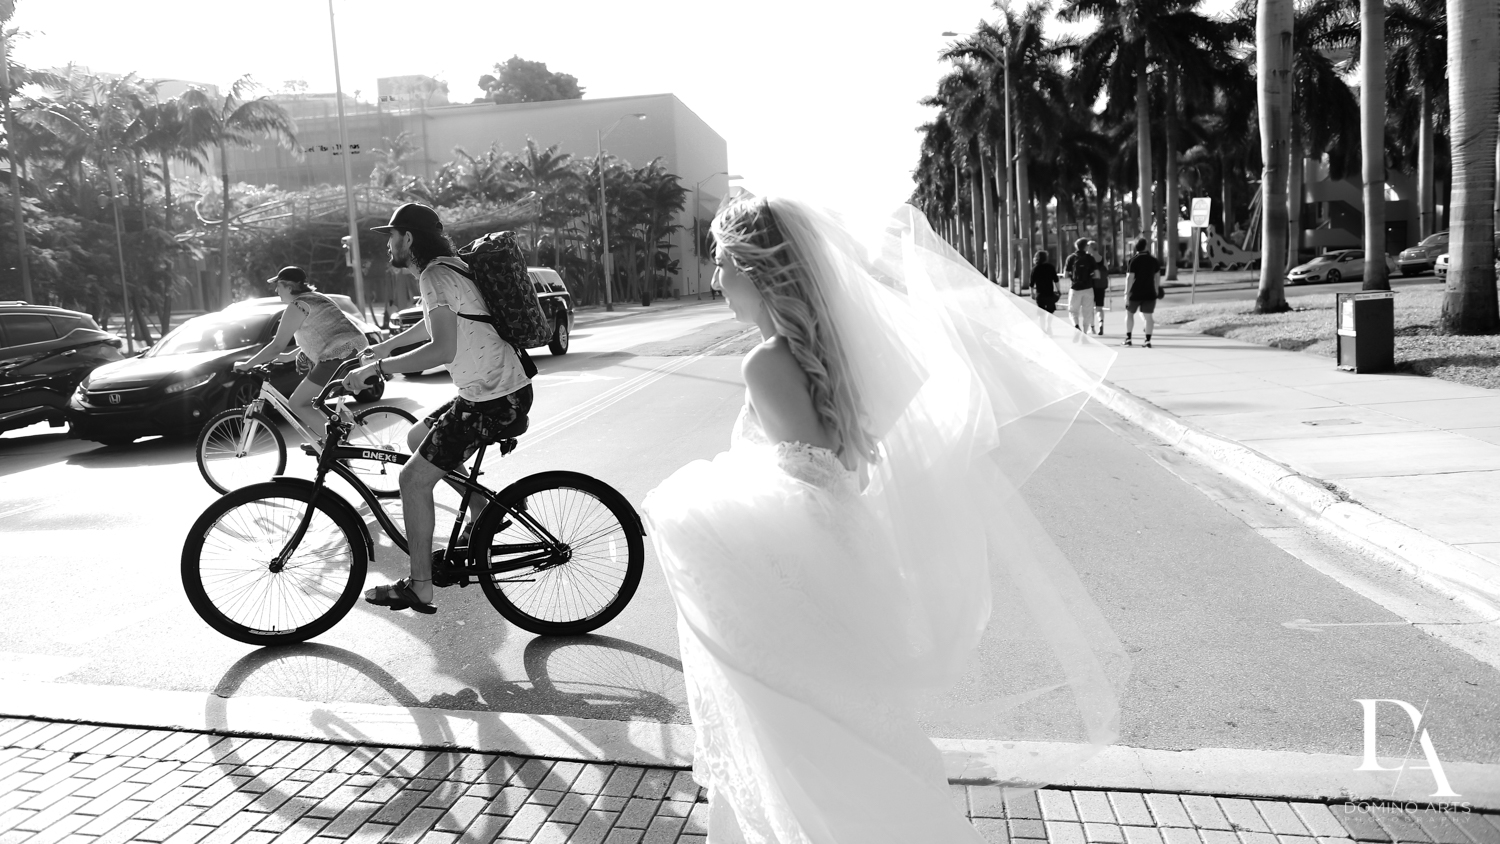 B&W Journalistic photos at Tropical Luxury Jewish Wedding in Miami Beach by Domino Arts Photography